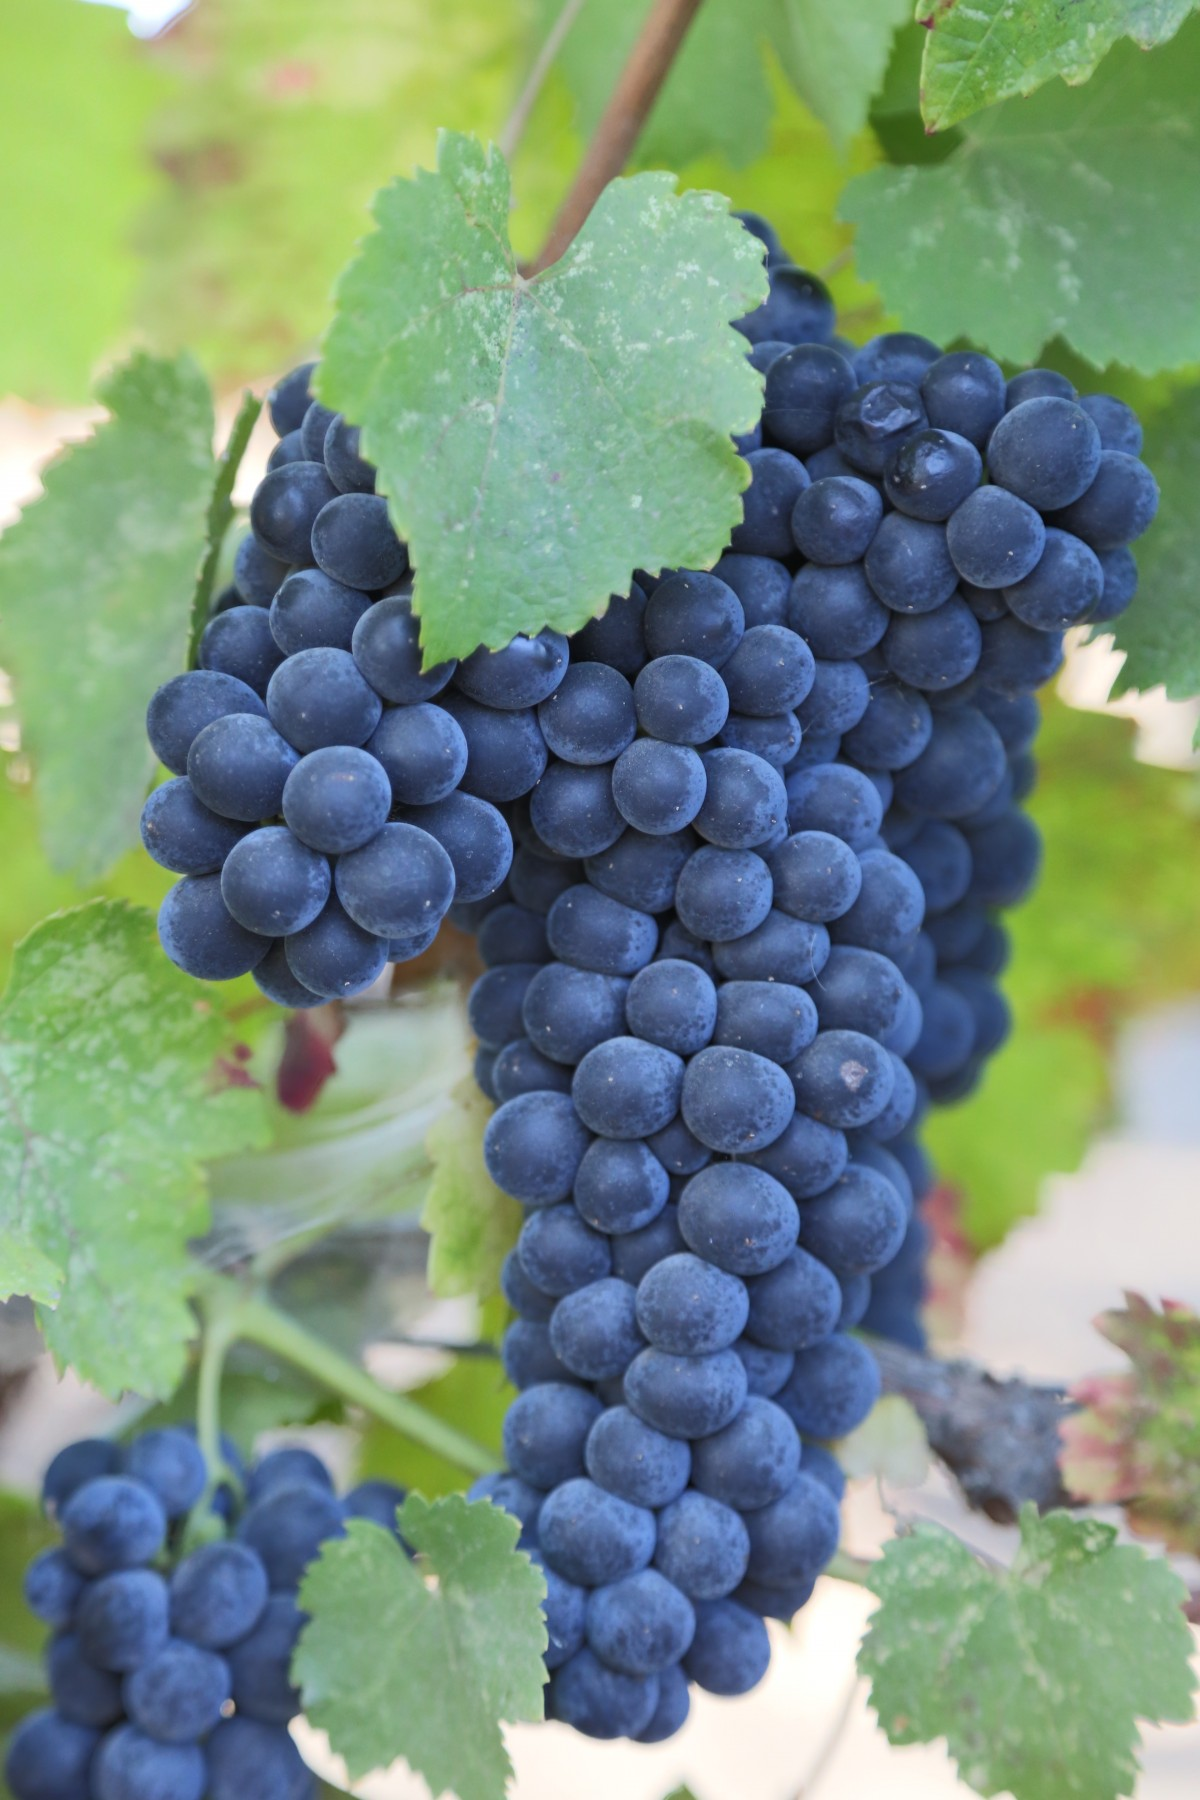 grapes_wine_wine_country_red_winery_franc_malbec_merlot-697666.jpg!d